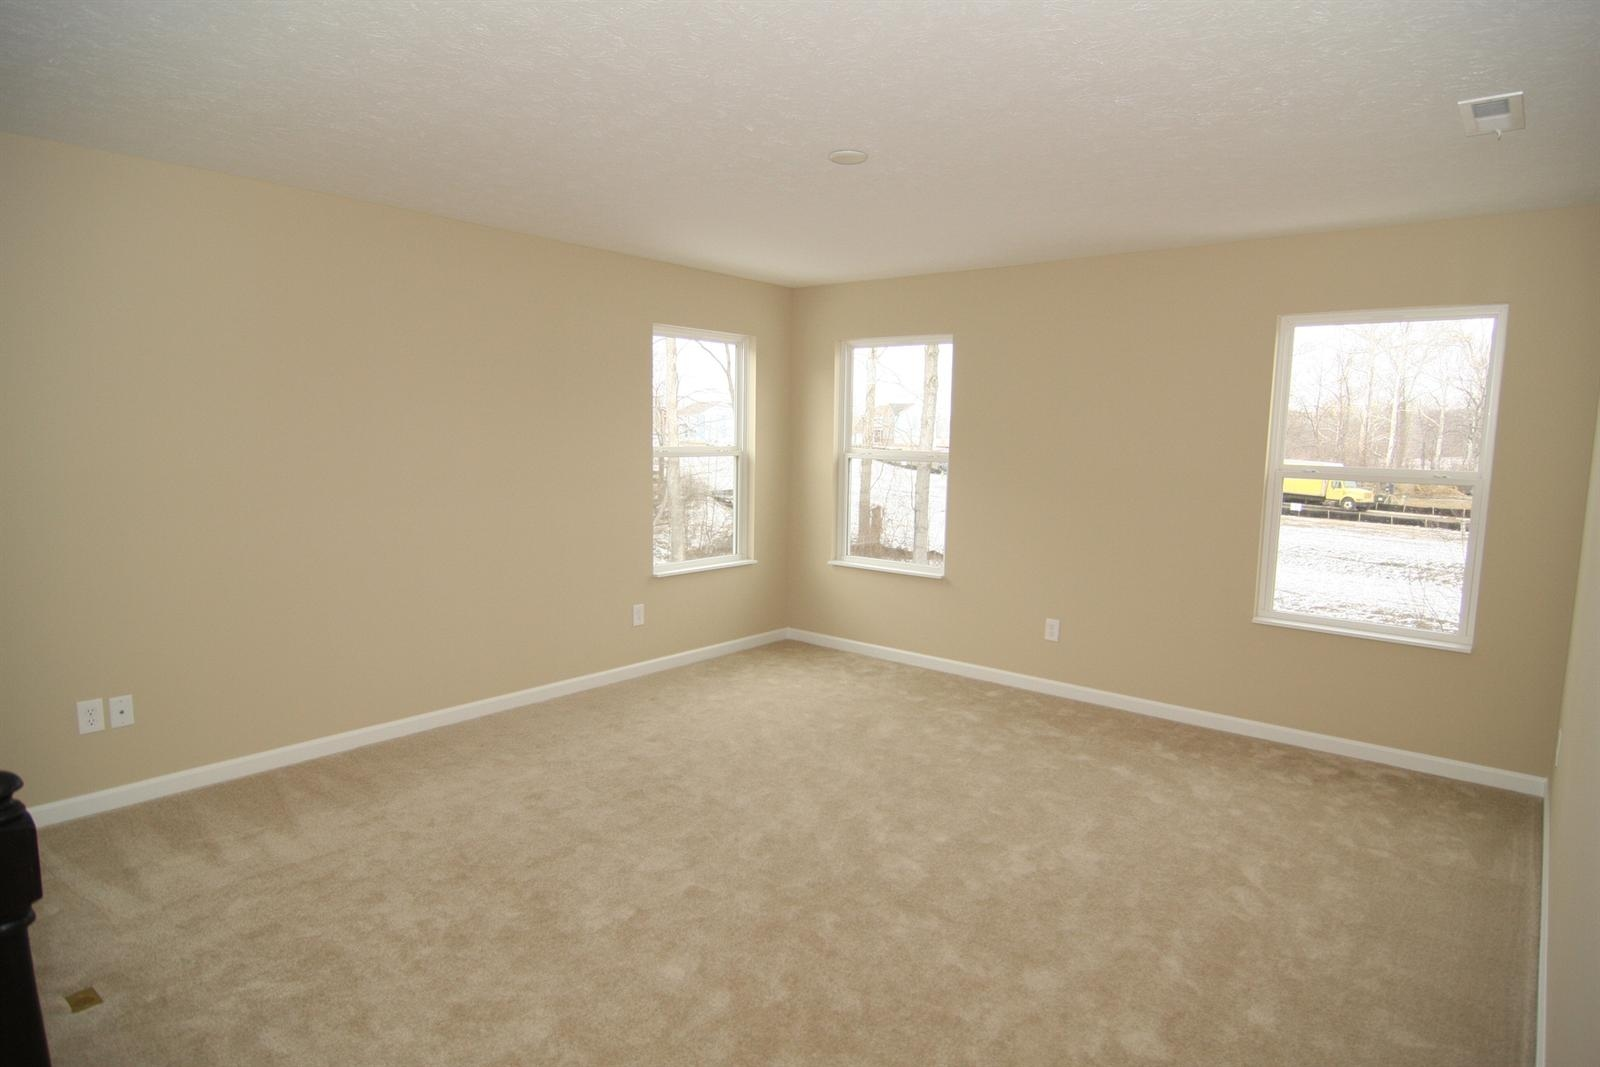 Real Estate Photography - 4852 Corydon Ln, Indianapolis, IN, 46239 - Location 9